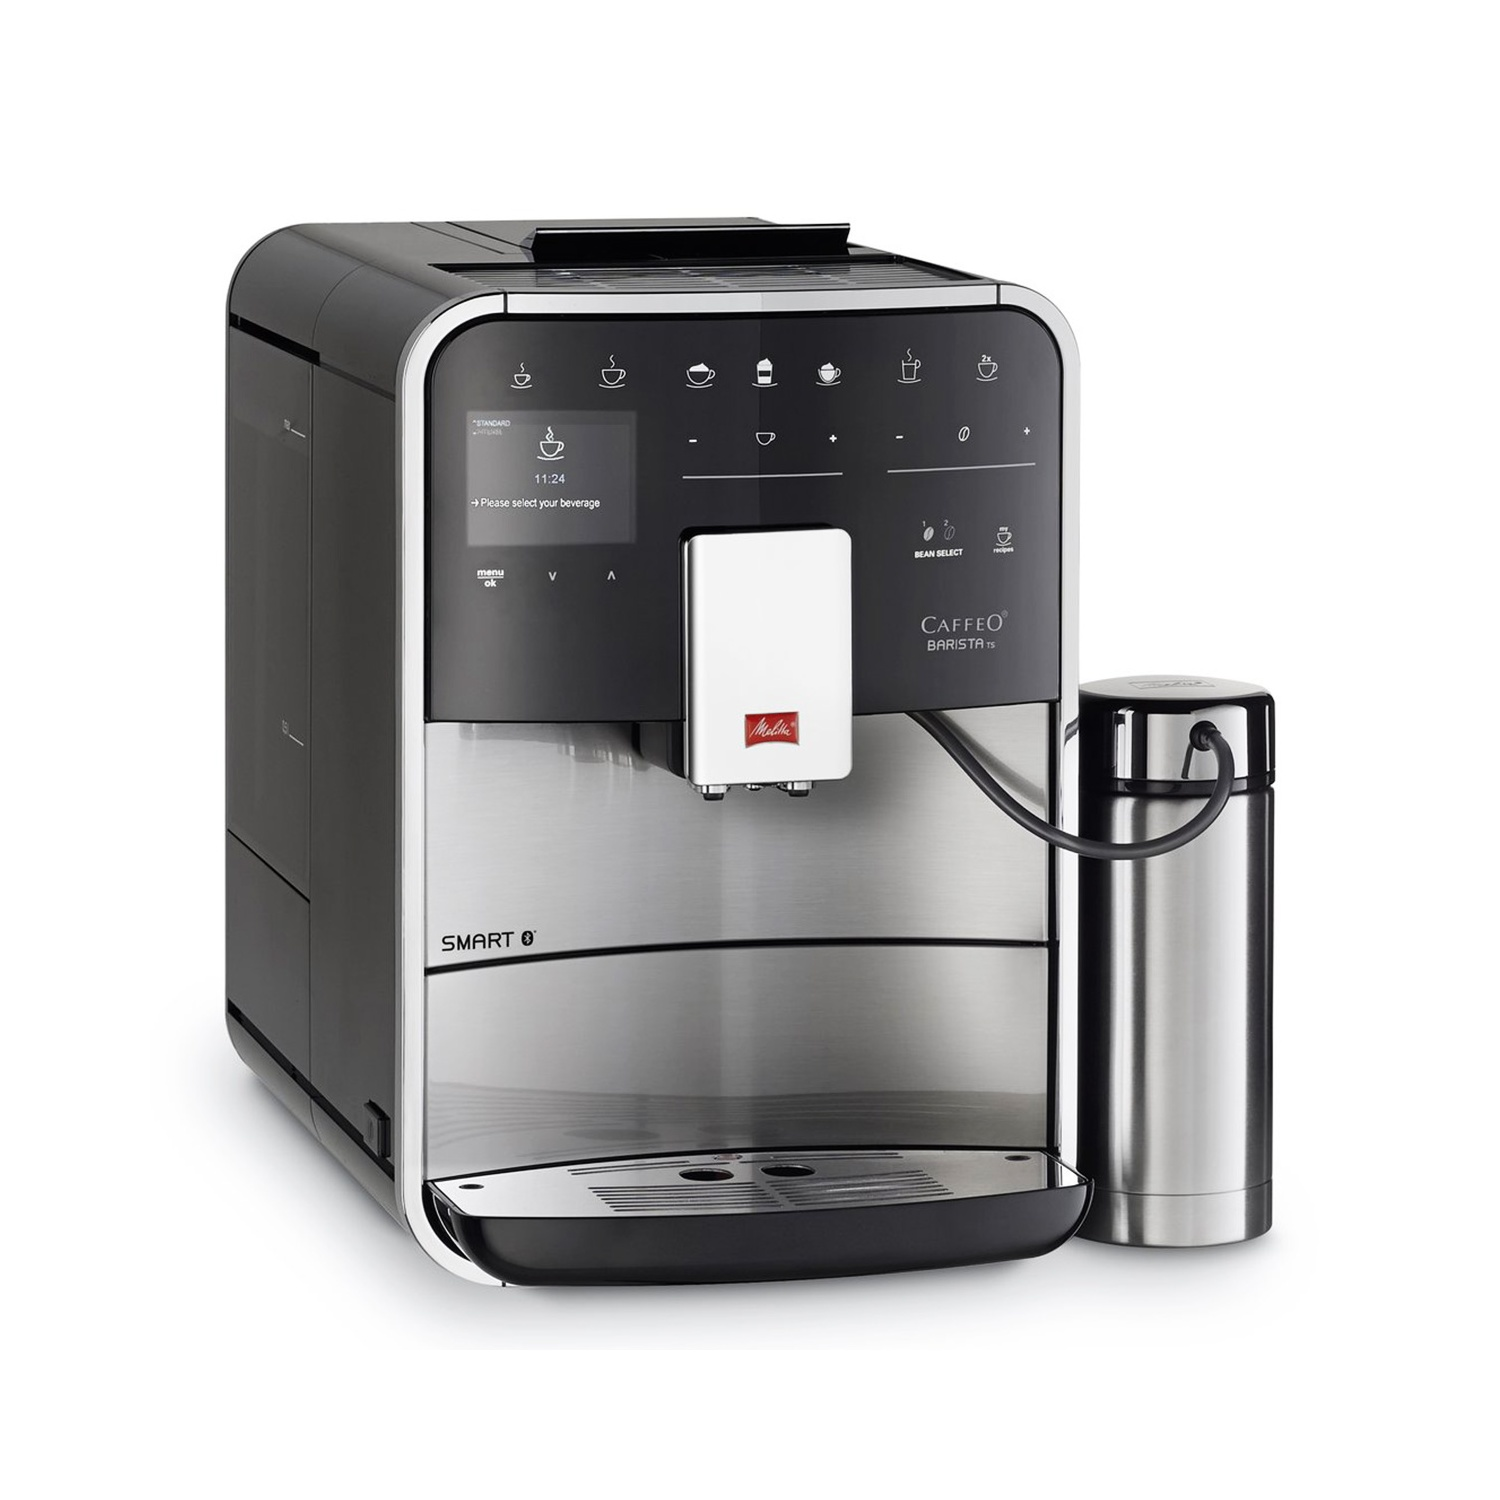 ekspres do kawy melitta f86 0 100 caffeo barista ts smart sst gratis 3kg kawy. Black Bedroom Furniture Sets. Home Design Ideas